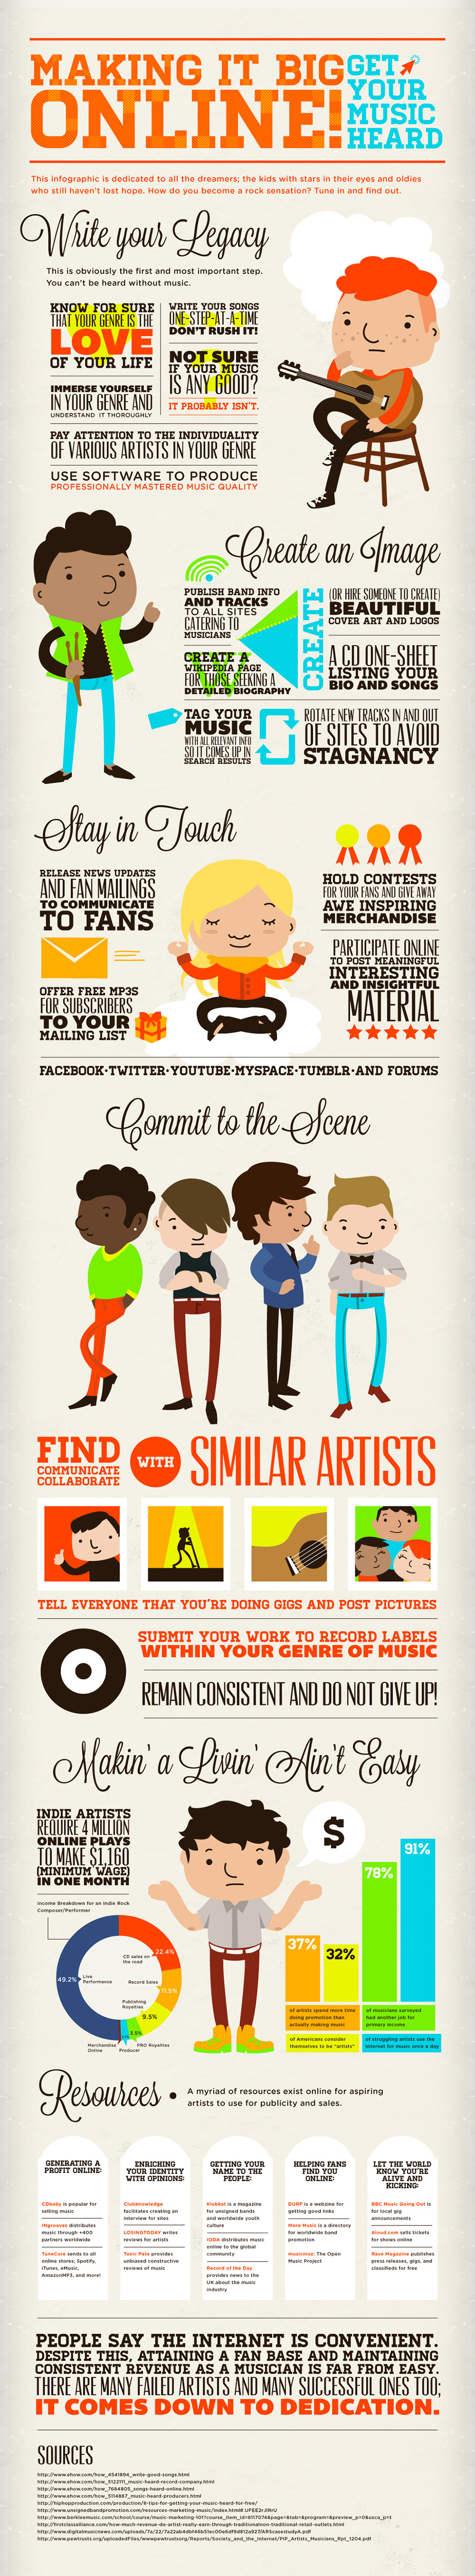 Promote-Your-Music-Online